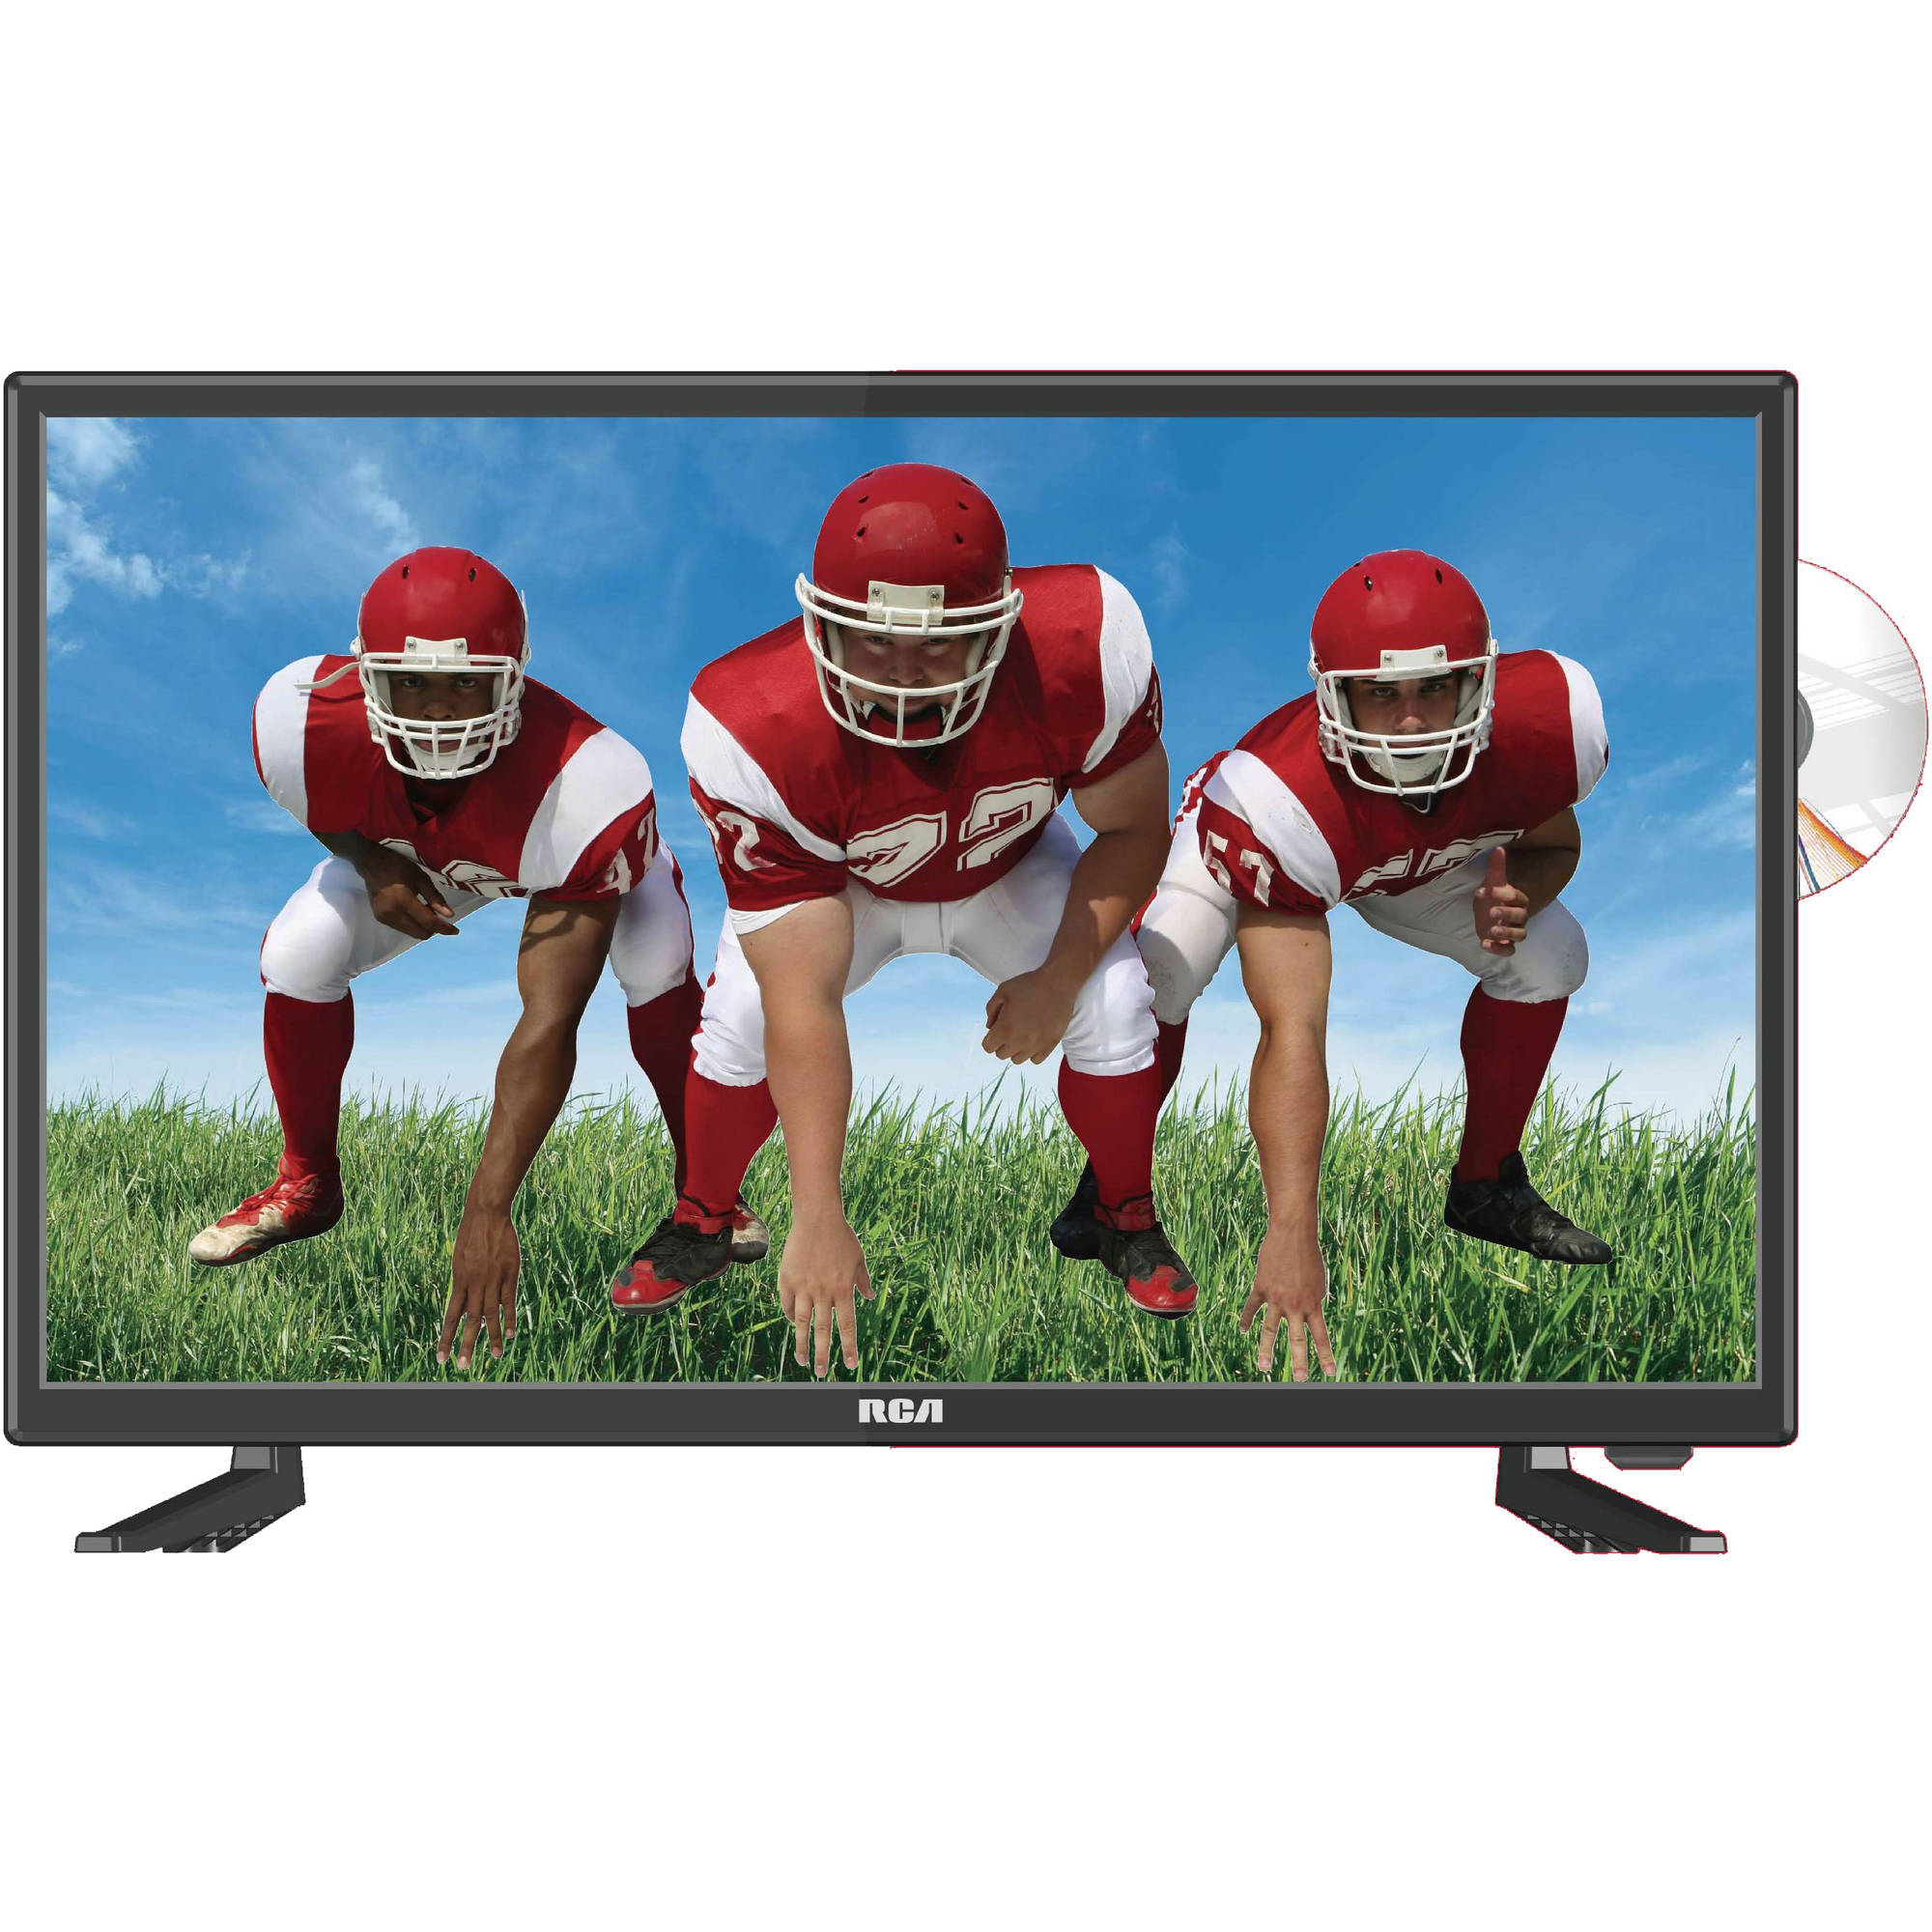 "RCA 19"" Class HD (720P) LED TV (RTDVD1900) with Built-in DVD"